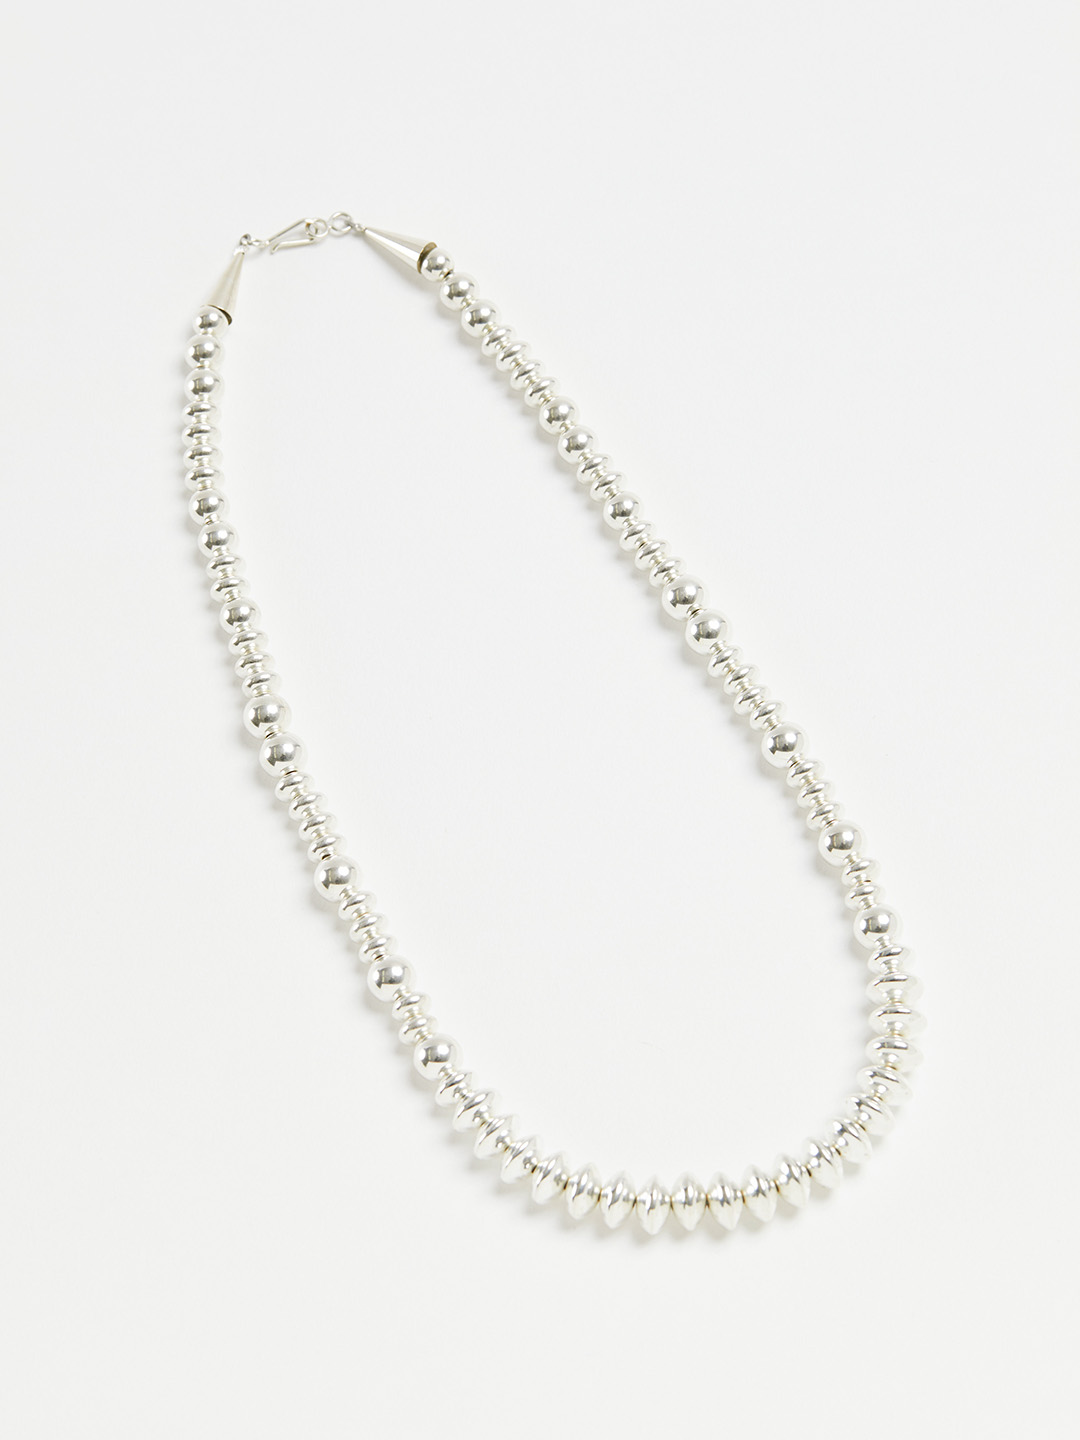 8mm Ball & Disc Chain Necklace - 46cm Silver